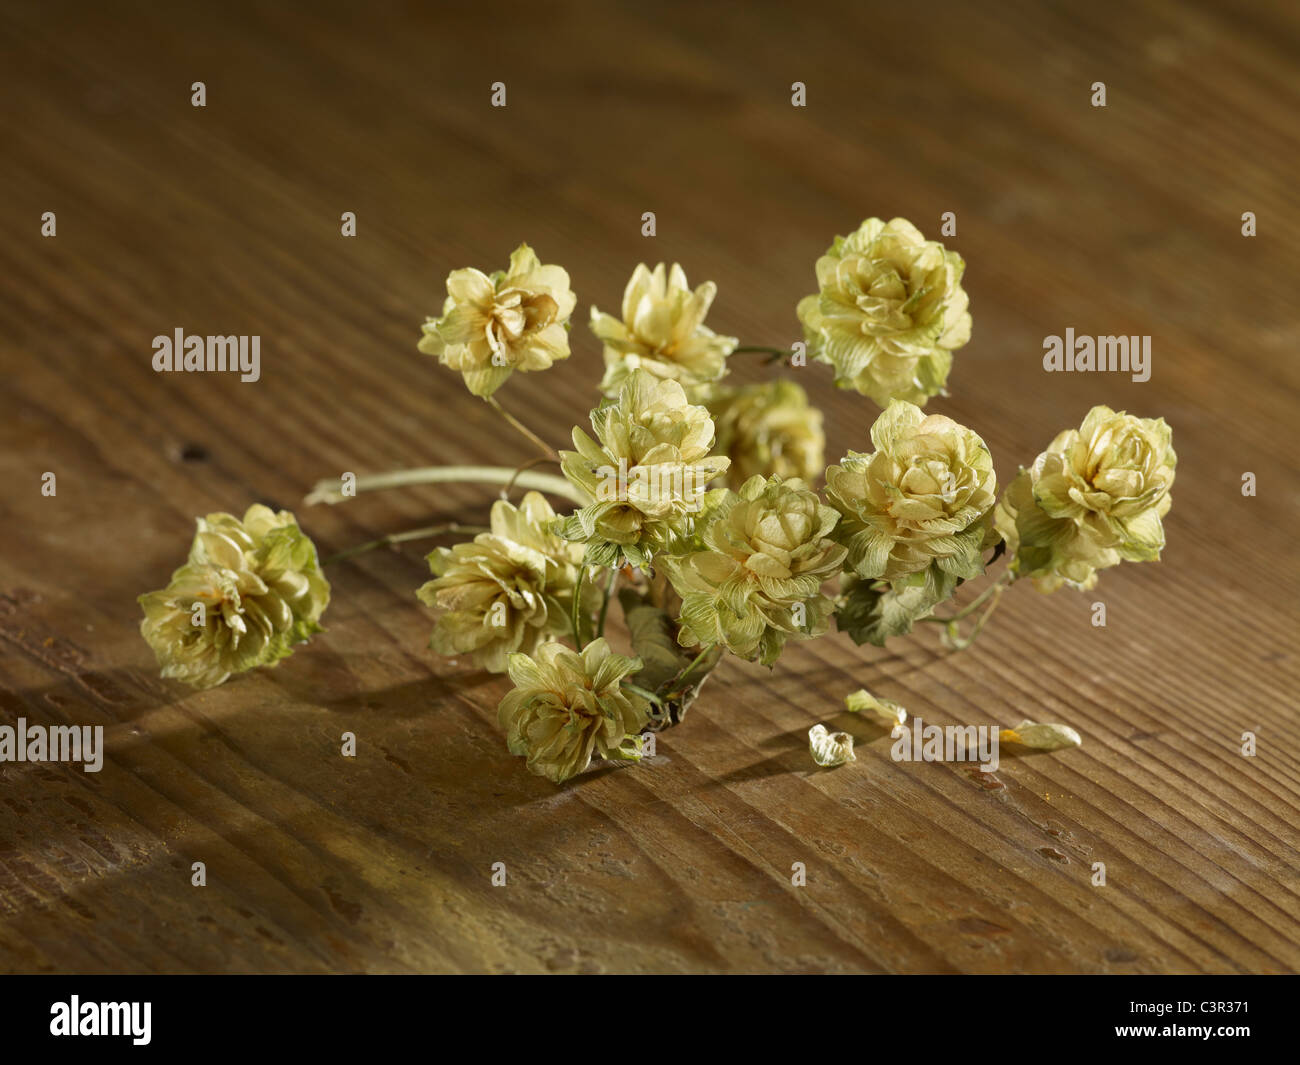 Dried hops on wooden surface - Stock Image